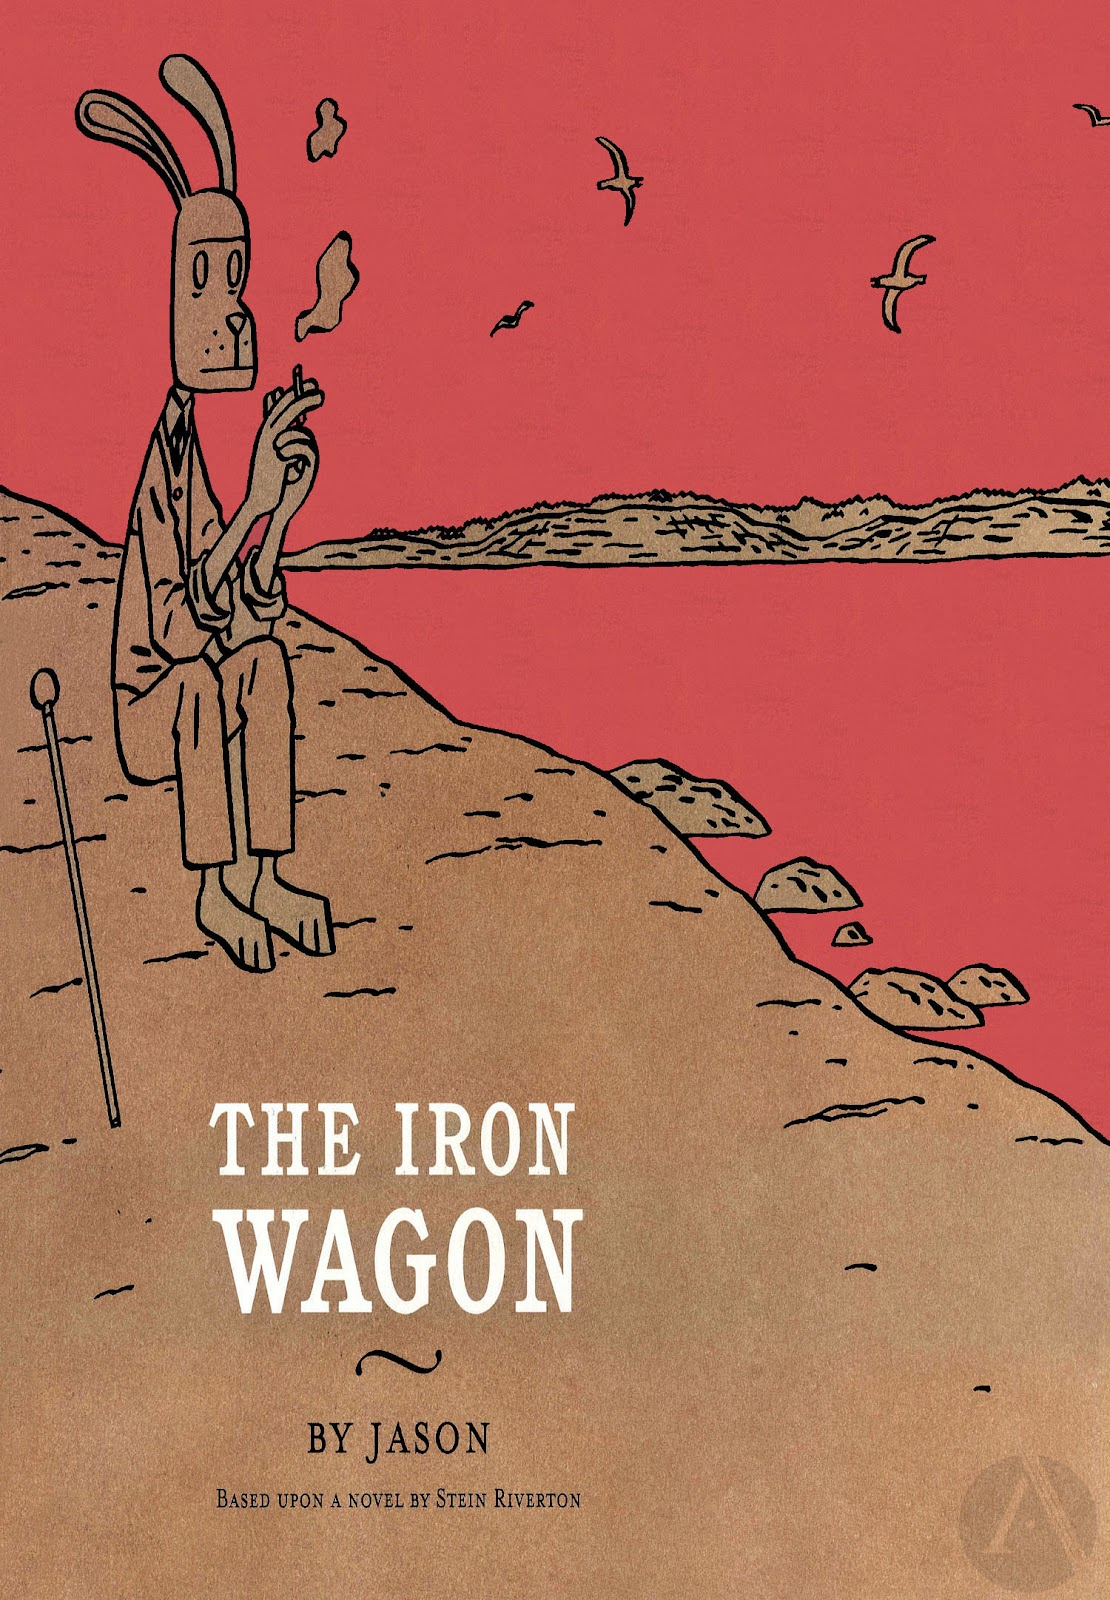 Read online The Iron Wagon comic -  Issue # TPB - 1